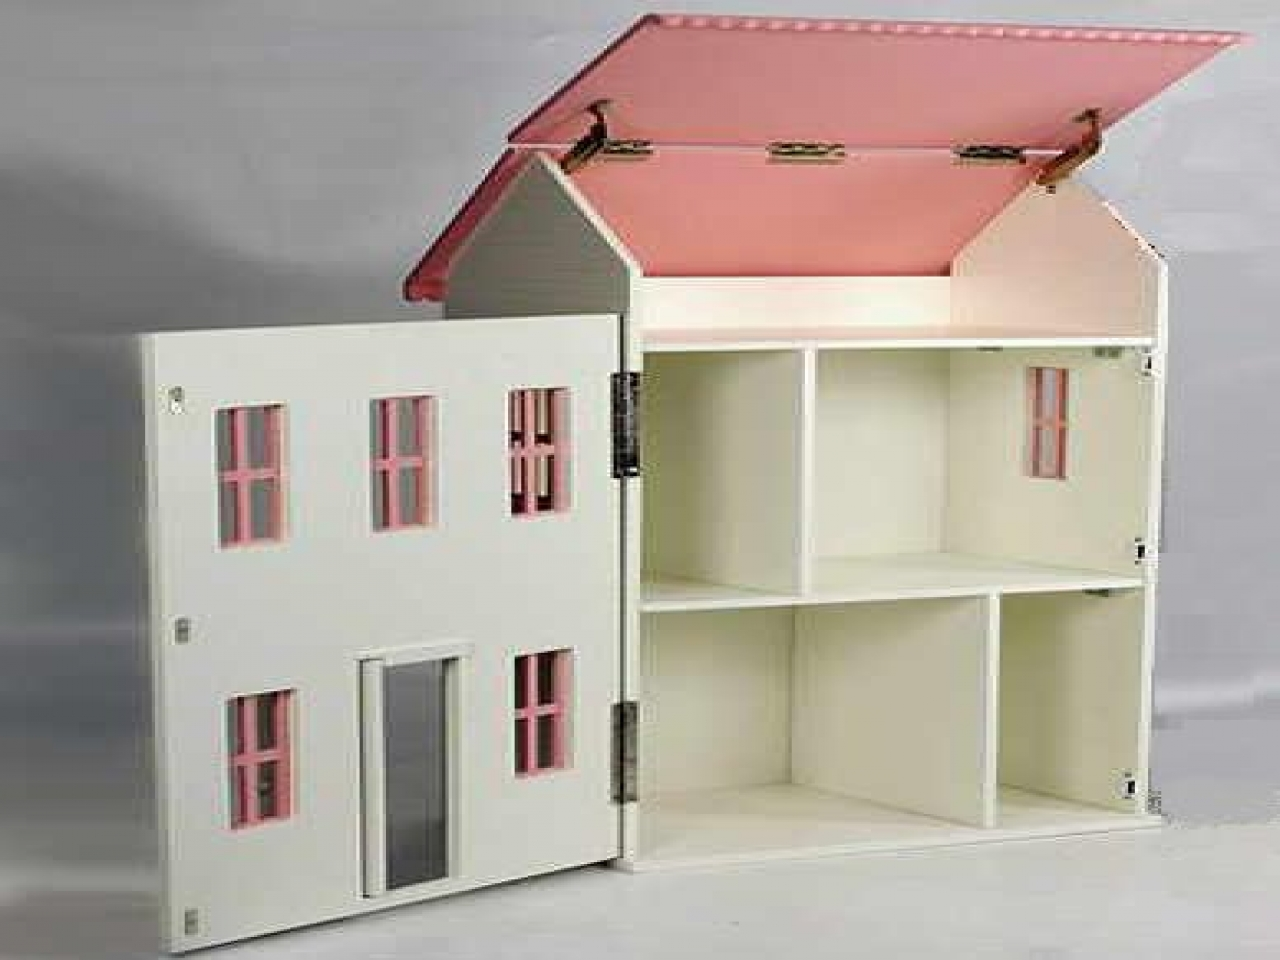 Barbie House Design Barbie Doll House Building Plans Barbie Doll Car House